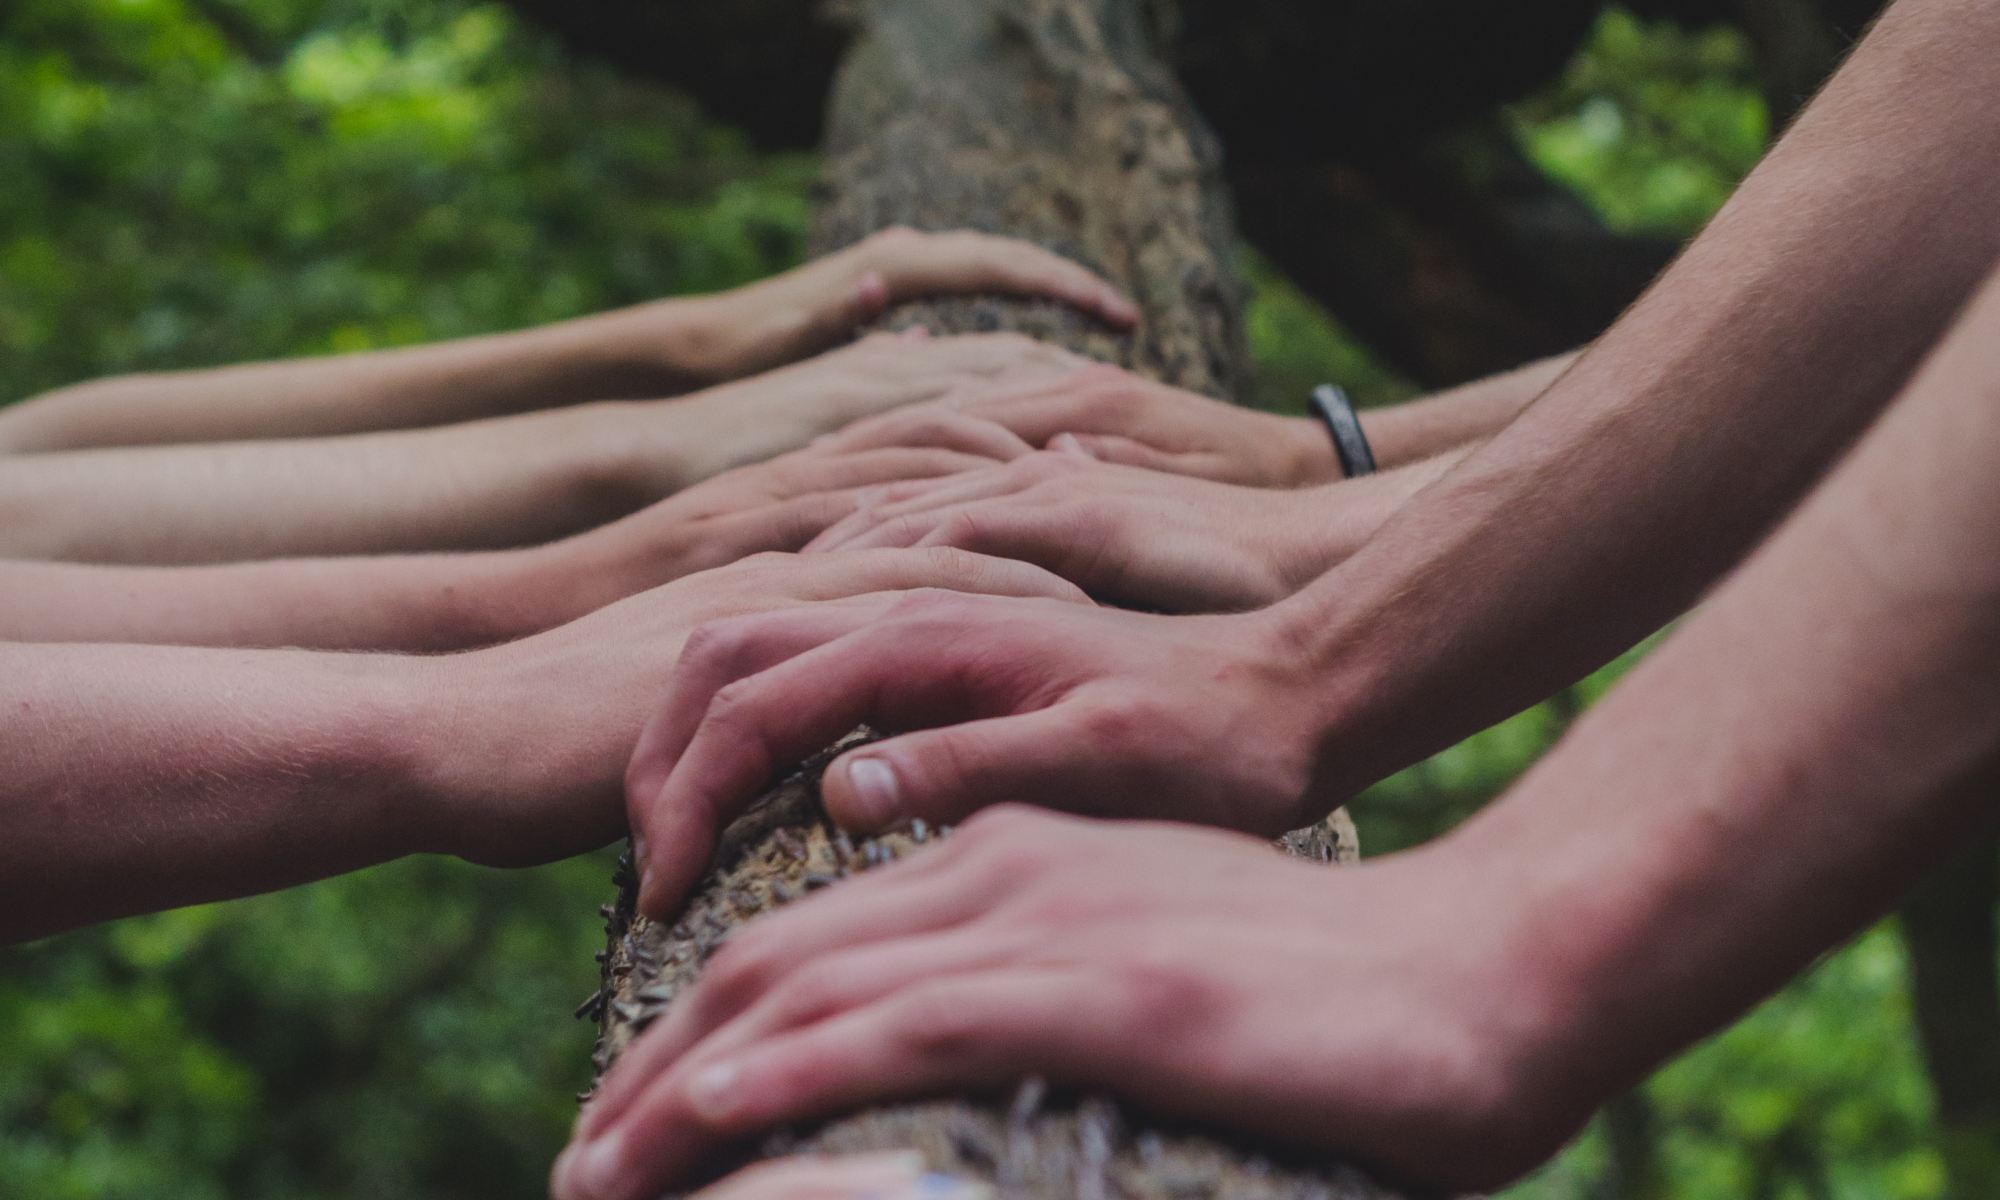 Team holding their hands together on a tree